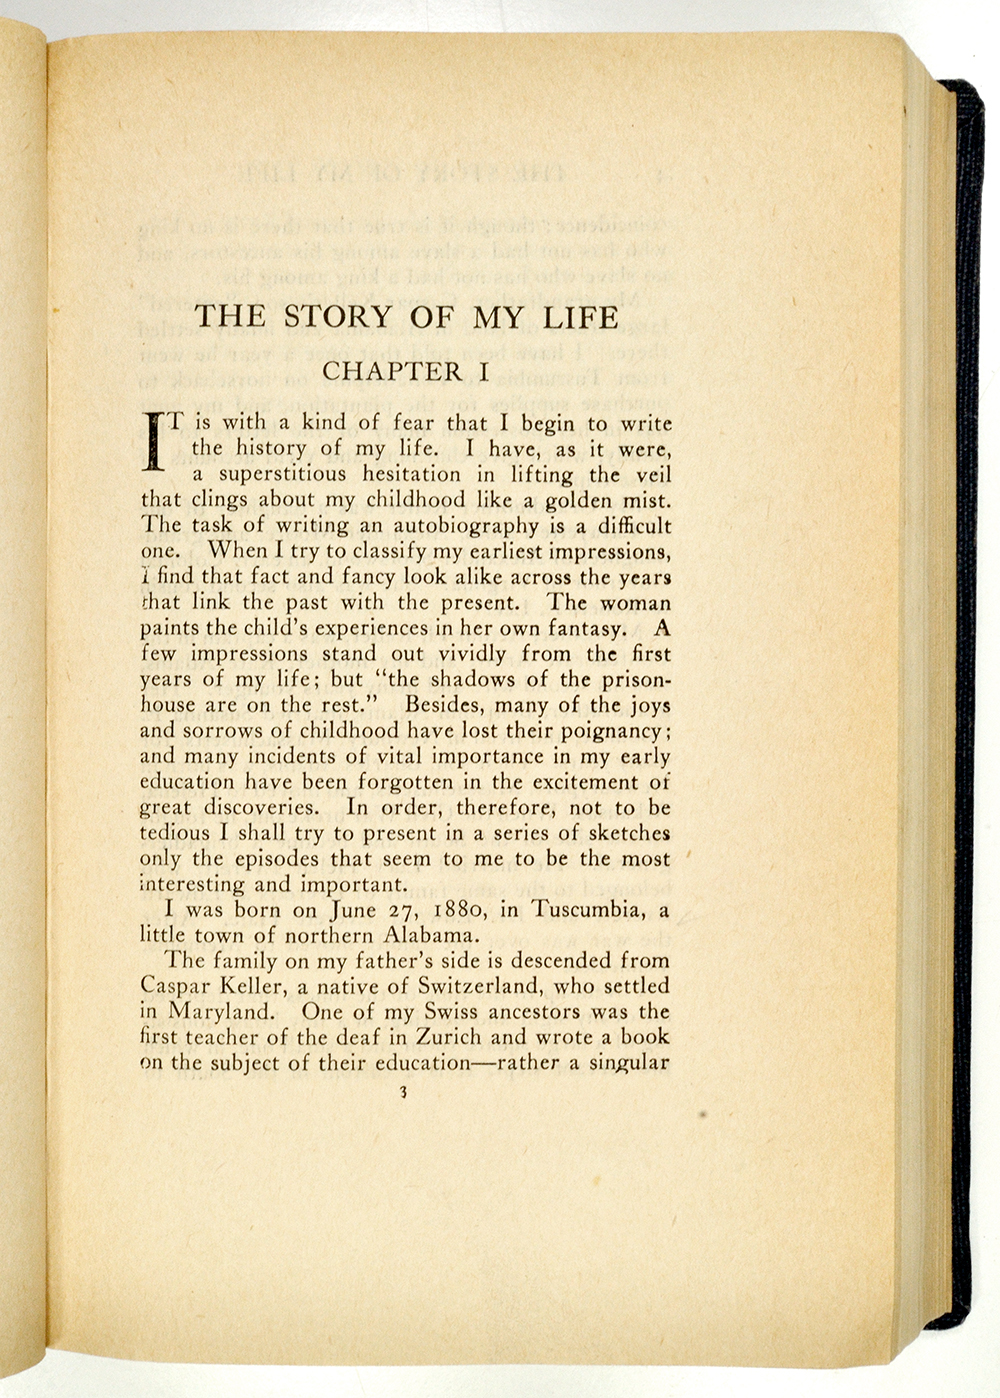 The Story of My Life by Helen KELLER   Biography   Autobiography   Full  AudioBook   YouTube OpulentDB